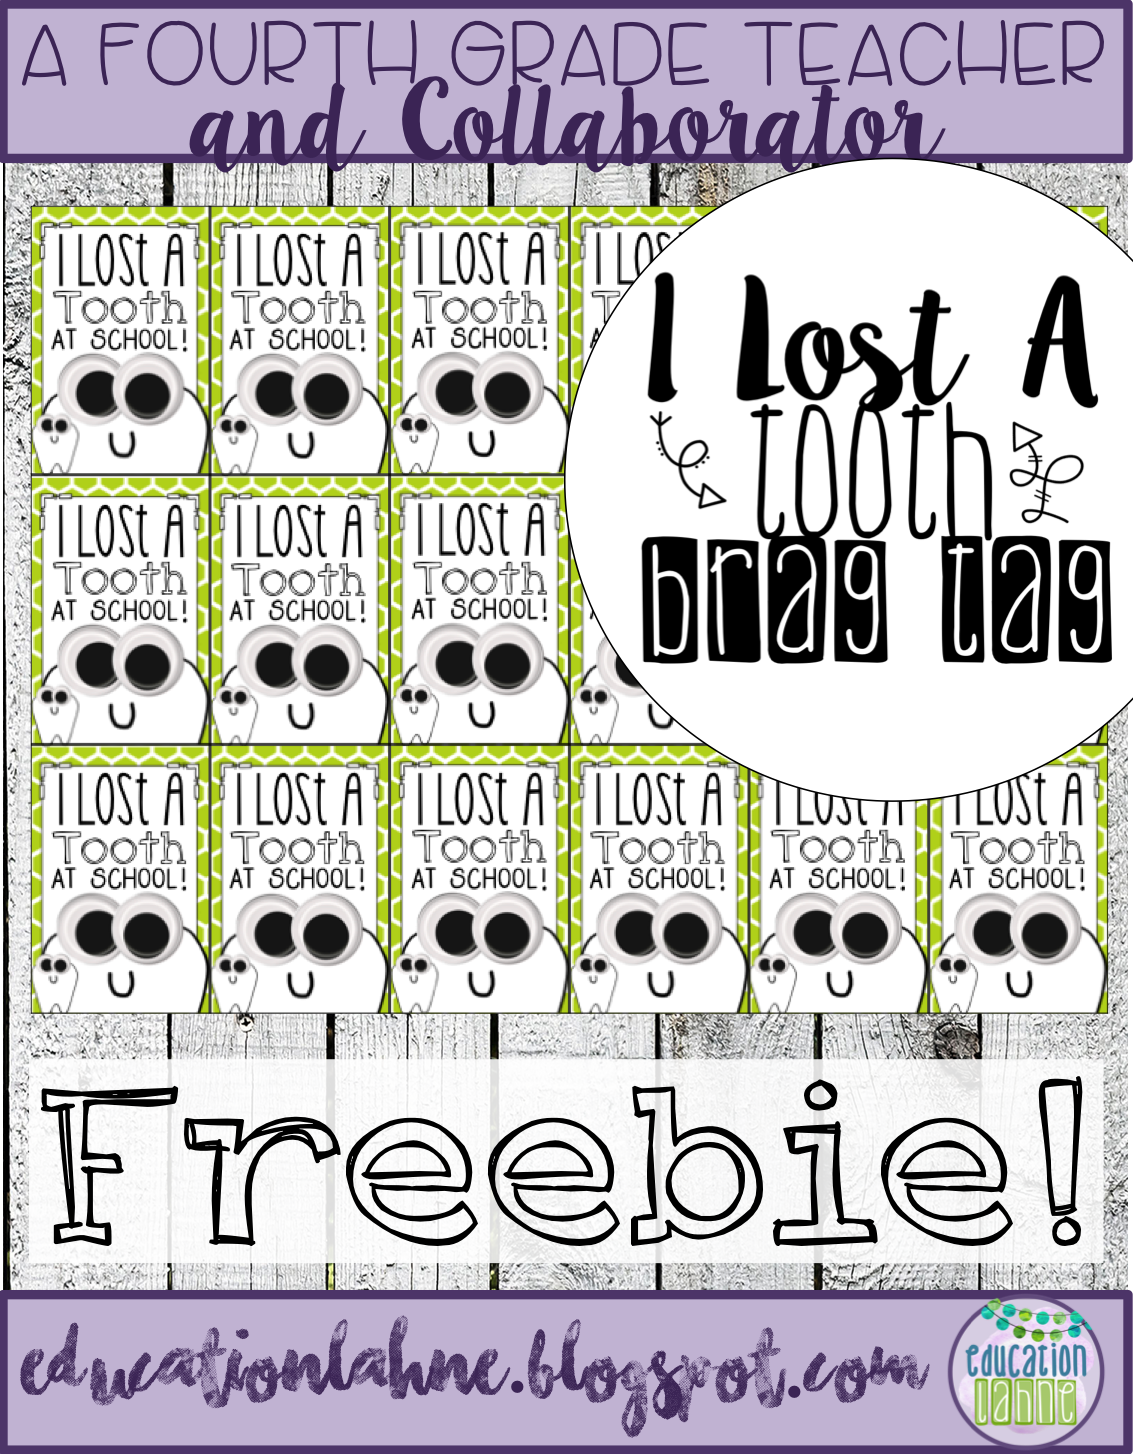 I Lost a Tooth at School Free Brag Tag! Grab this freebie to celebrate when your student looses a tooth at school. For more brag tags like this one, visit Education Lahne on Pinterest!